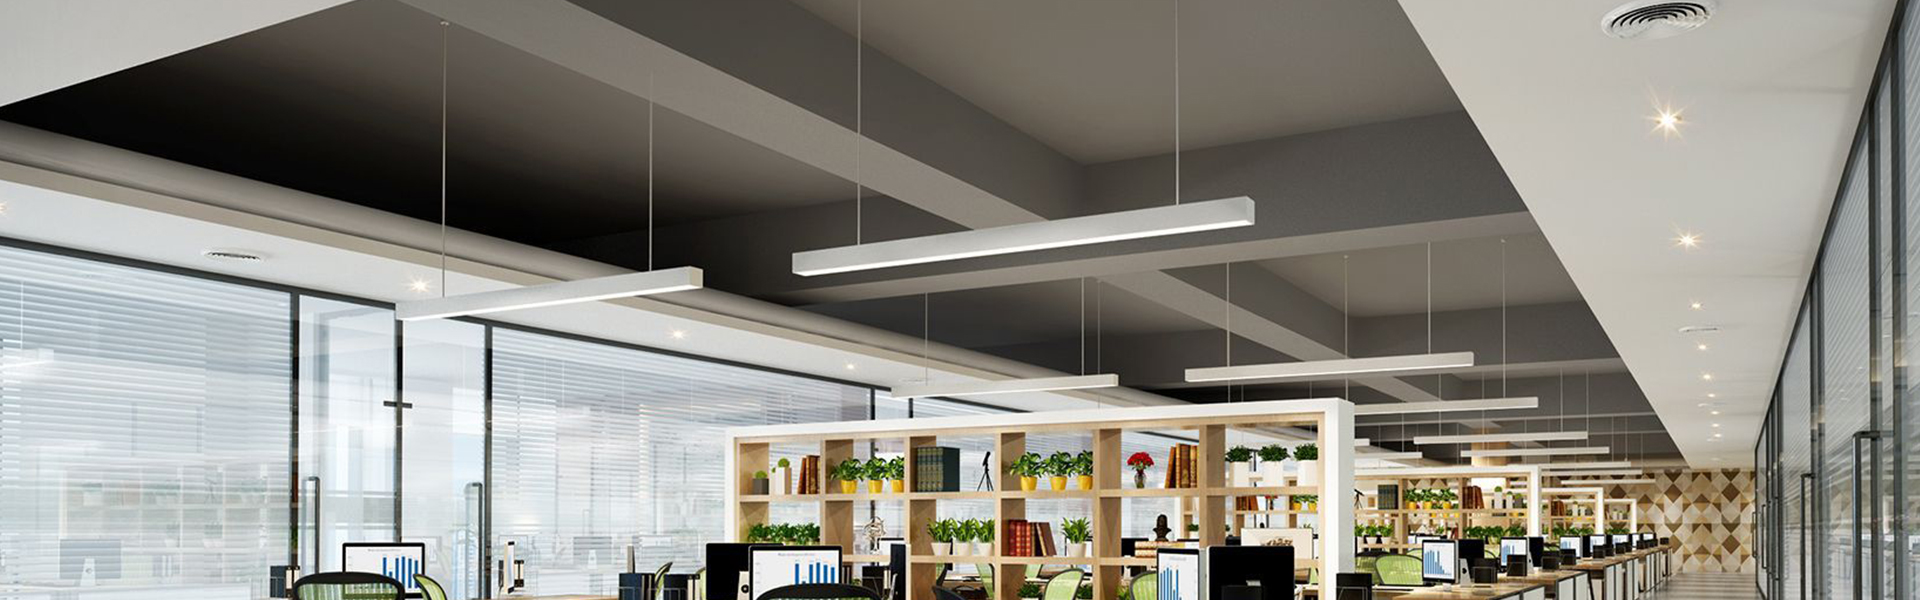 pendant linear lighting